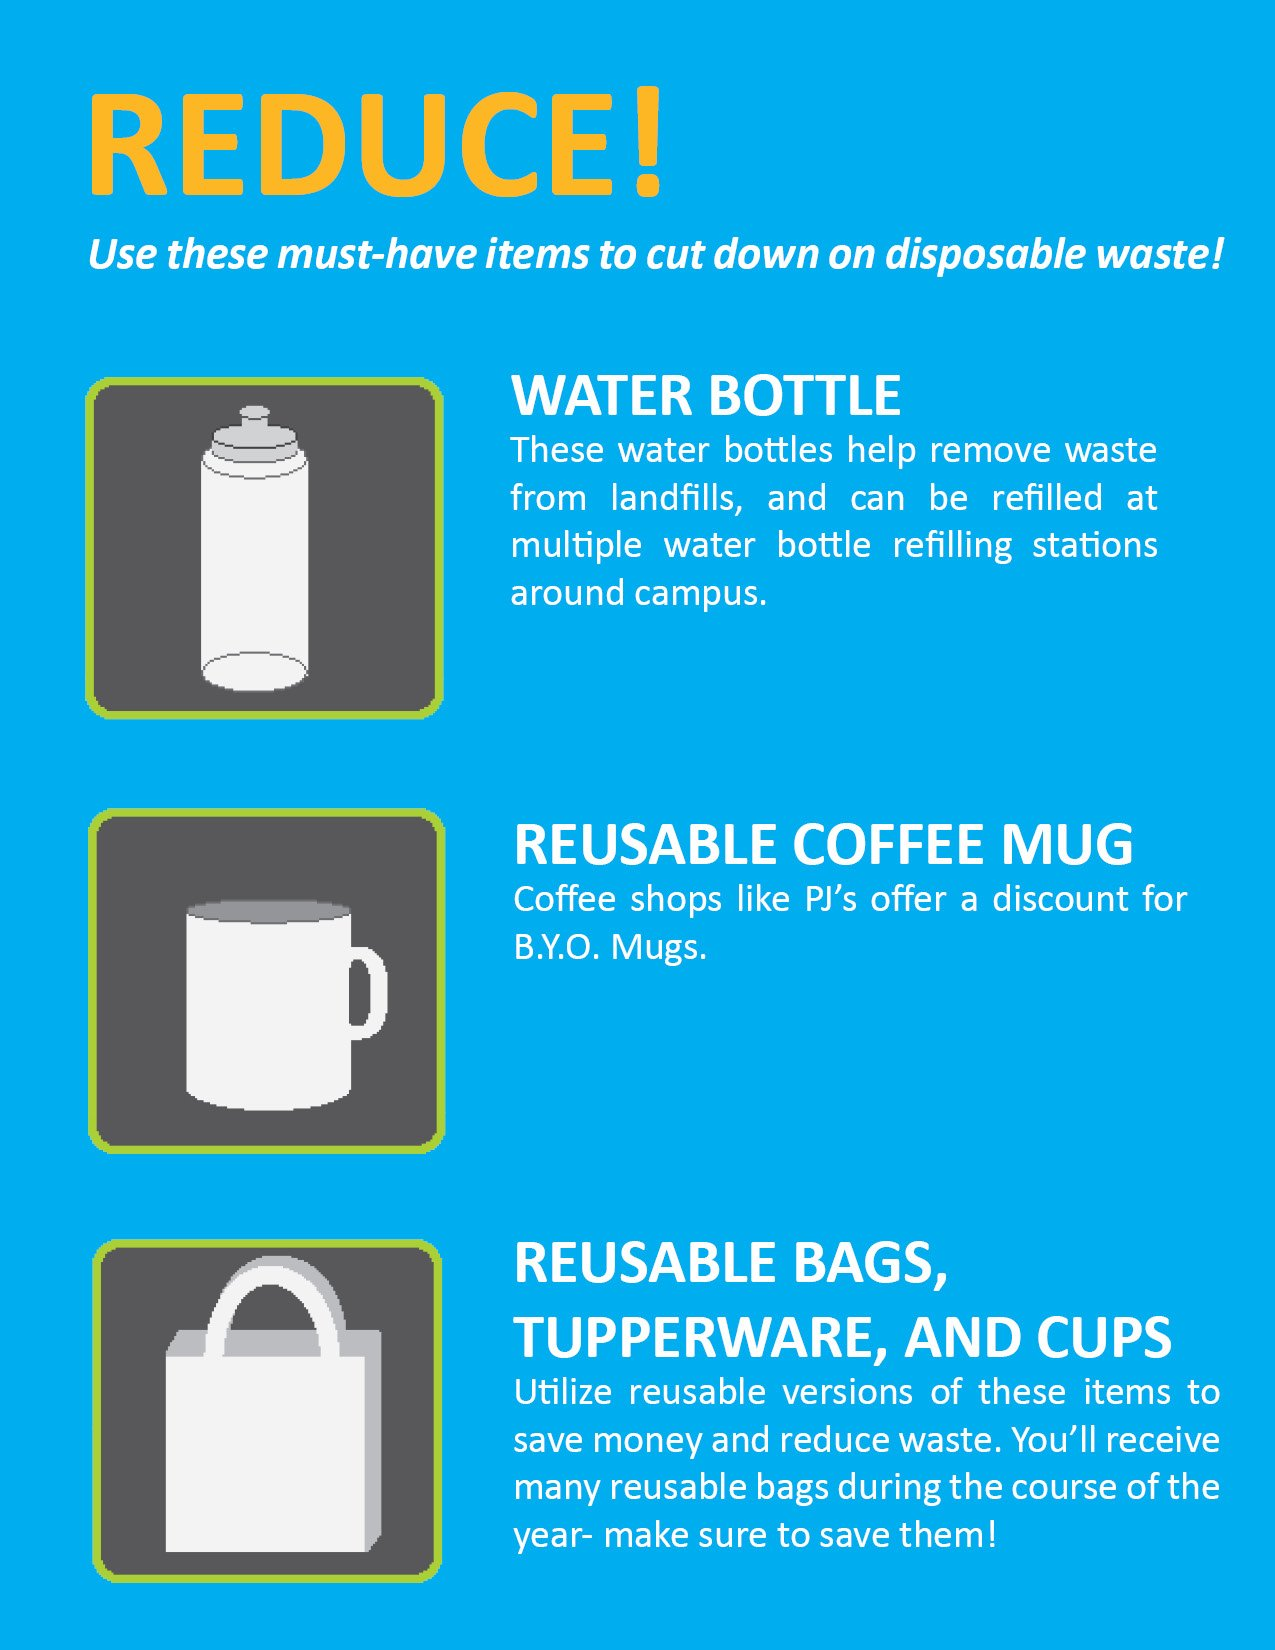 Here are some easy ways to reduce waste! @TaylorTulane post a pic of how you'll help Tulane reduce waste & win #recyclemania #tulanerecycles https://t.co/Uue6JHZwXc